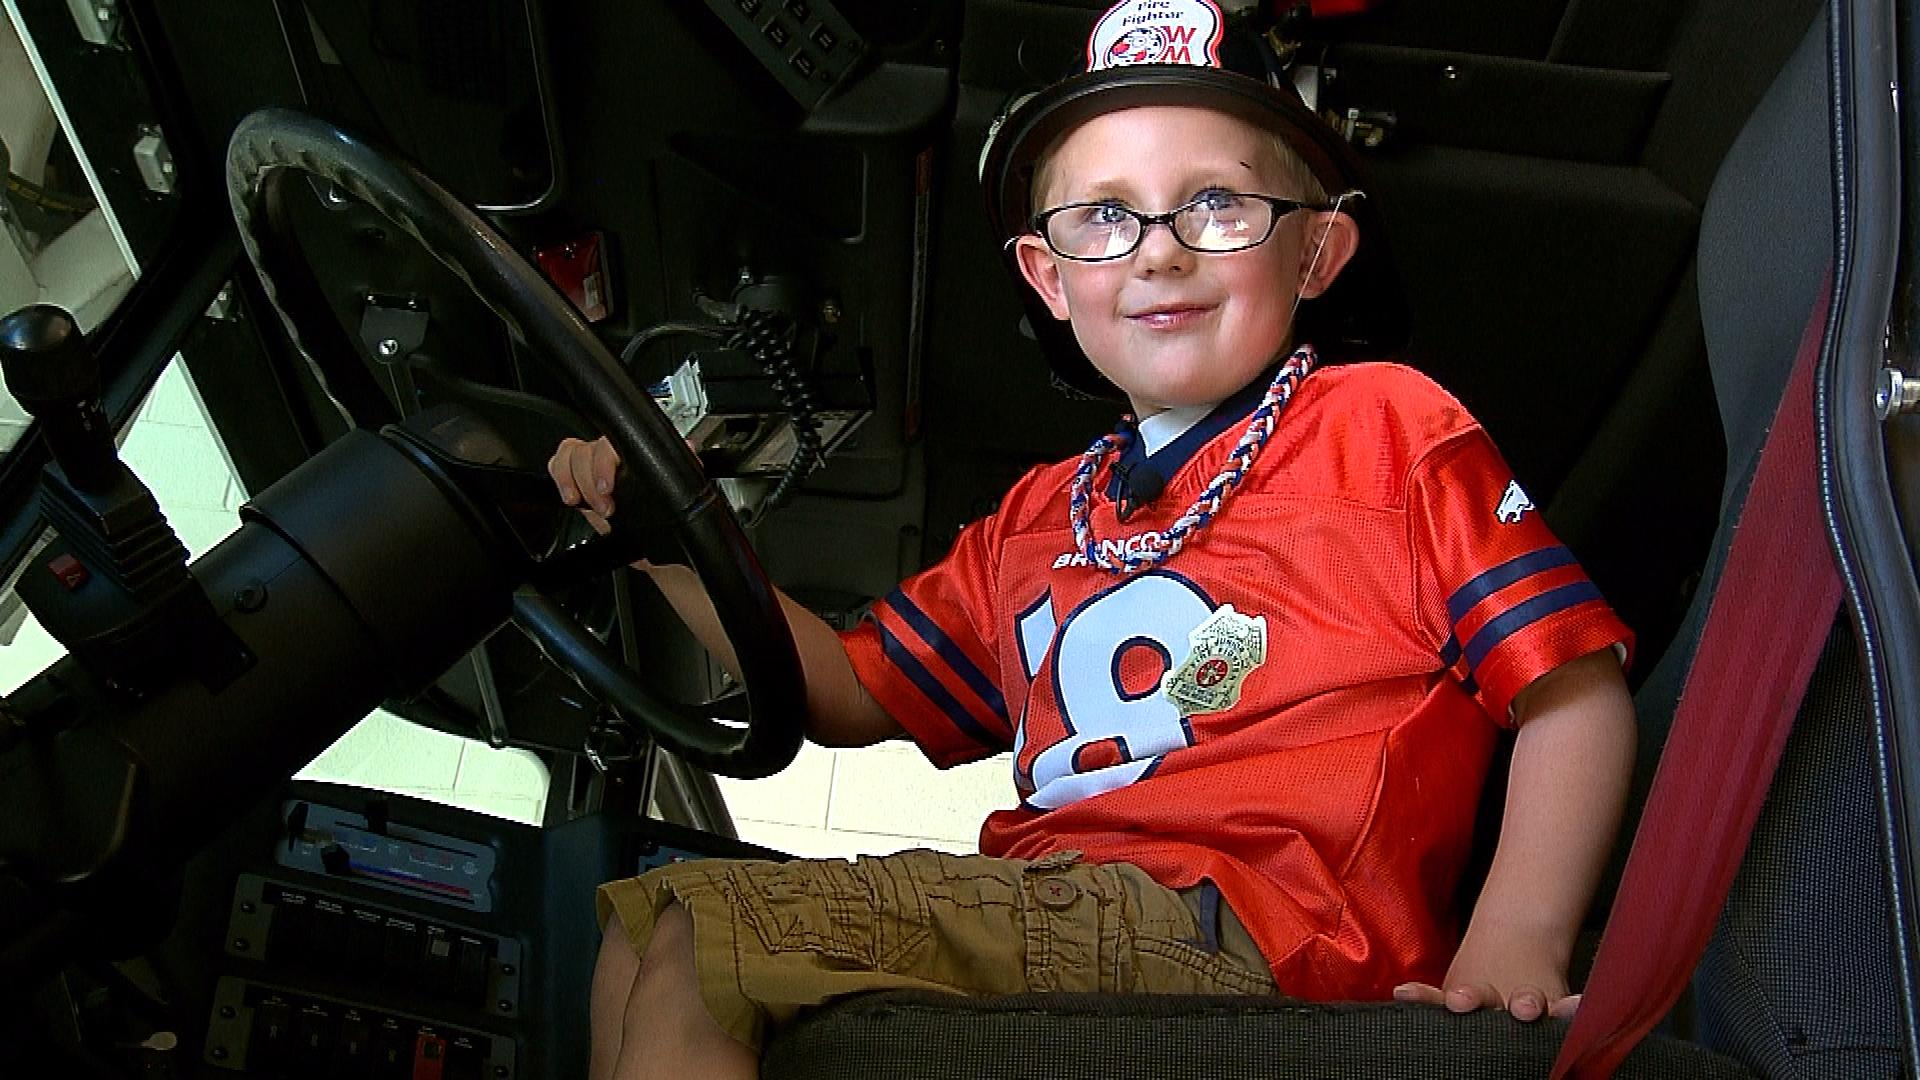 Brayden at the West Metro fire station (credit: CBS)